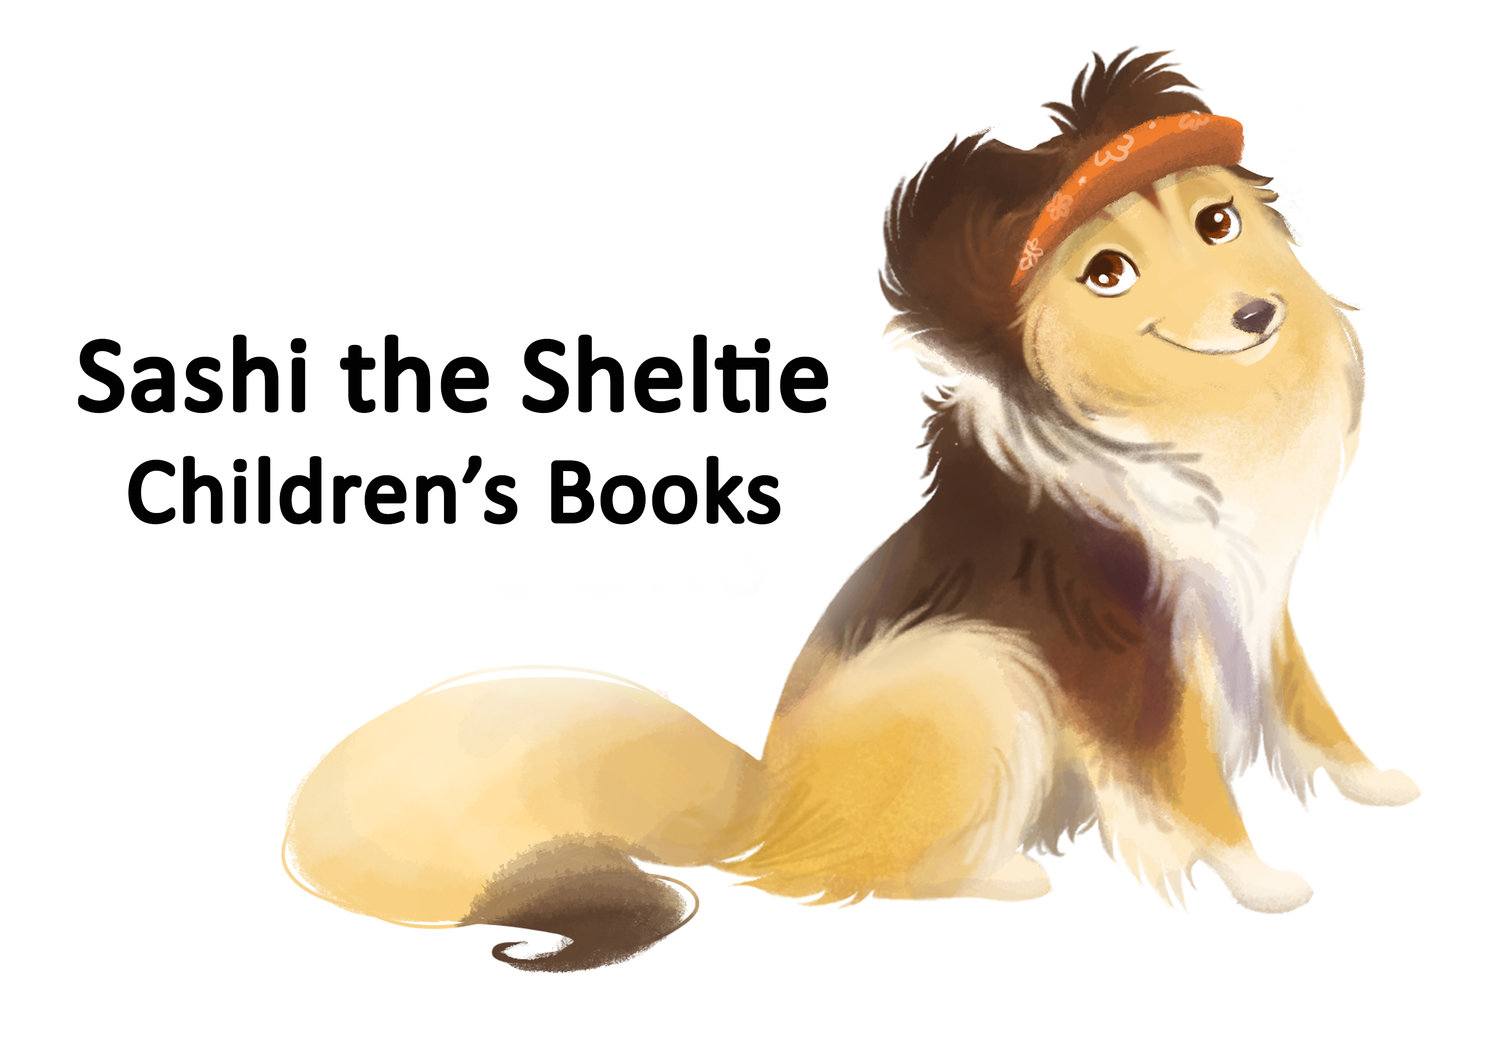 Sashi the Sheltie